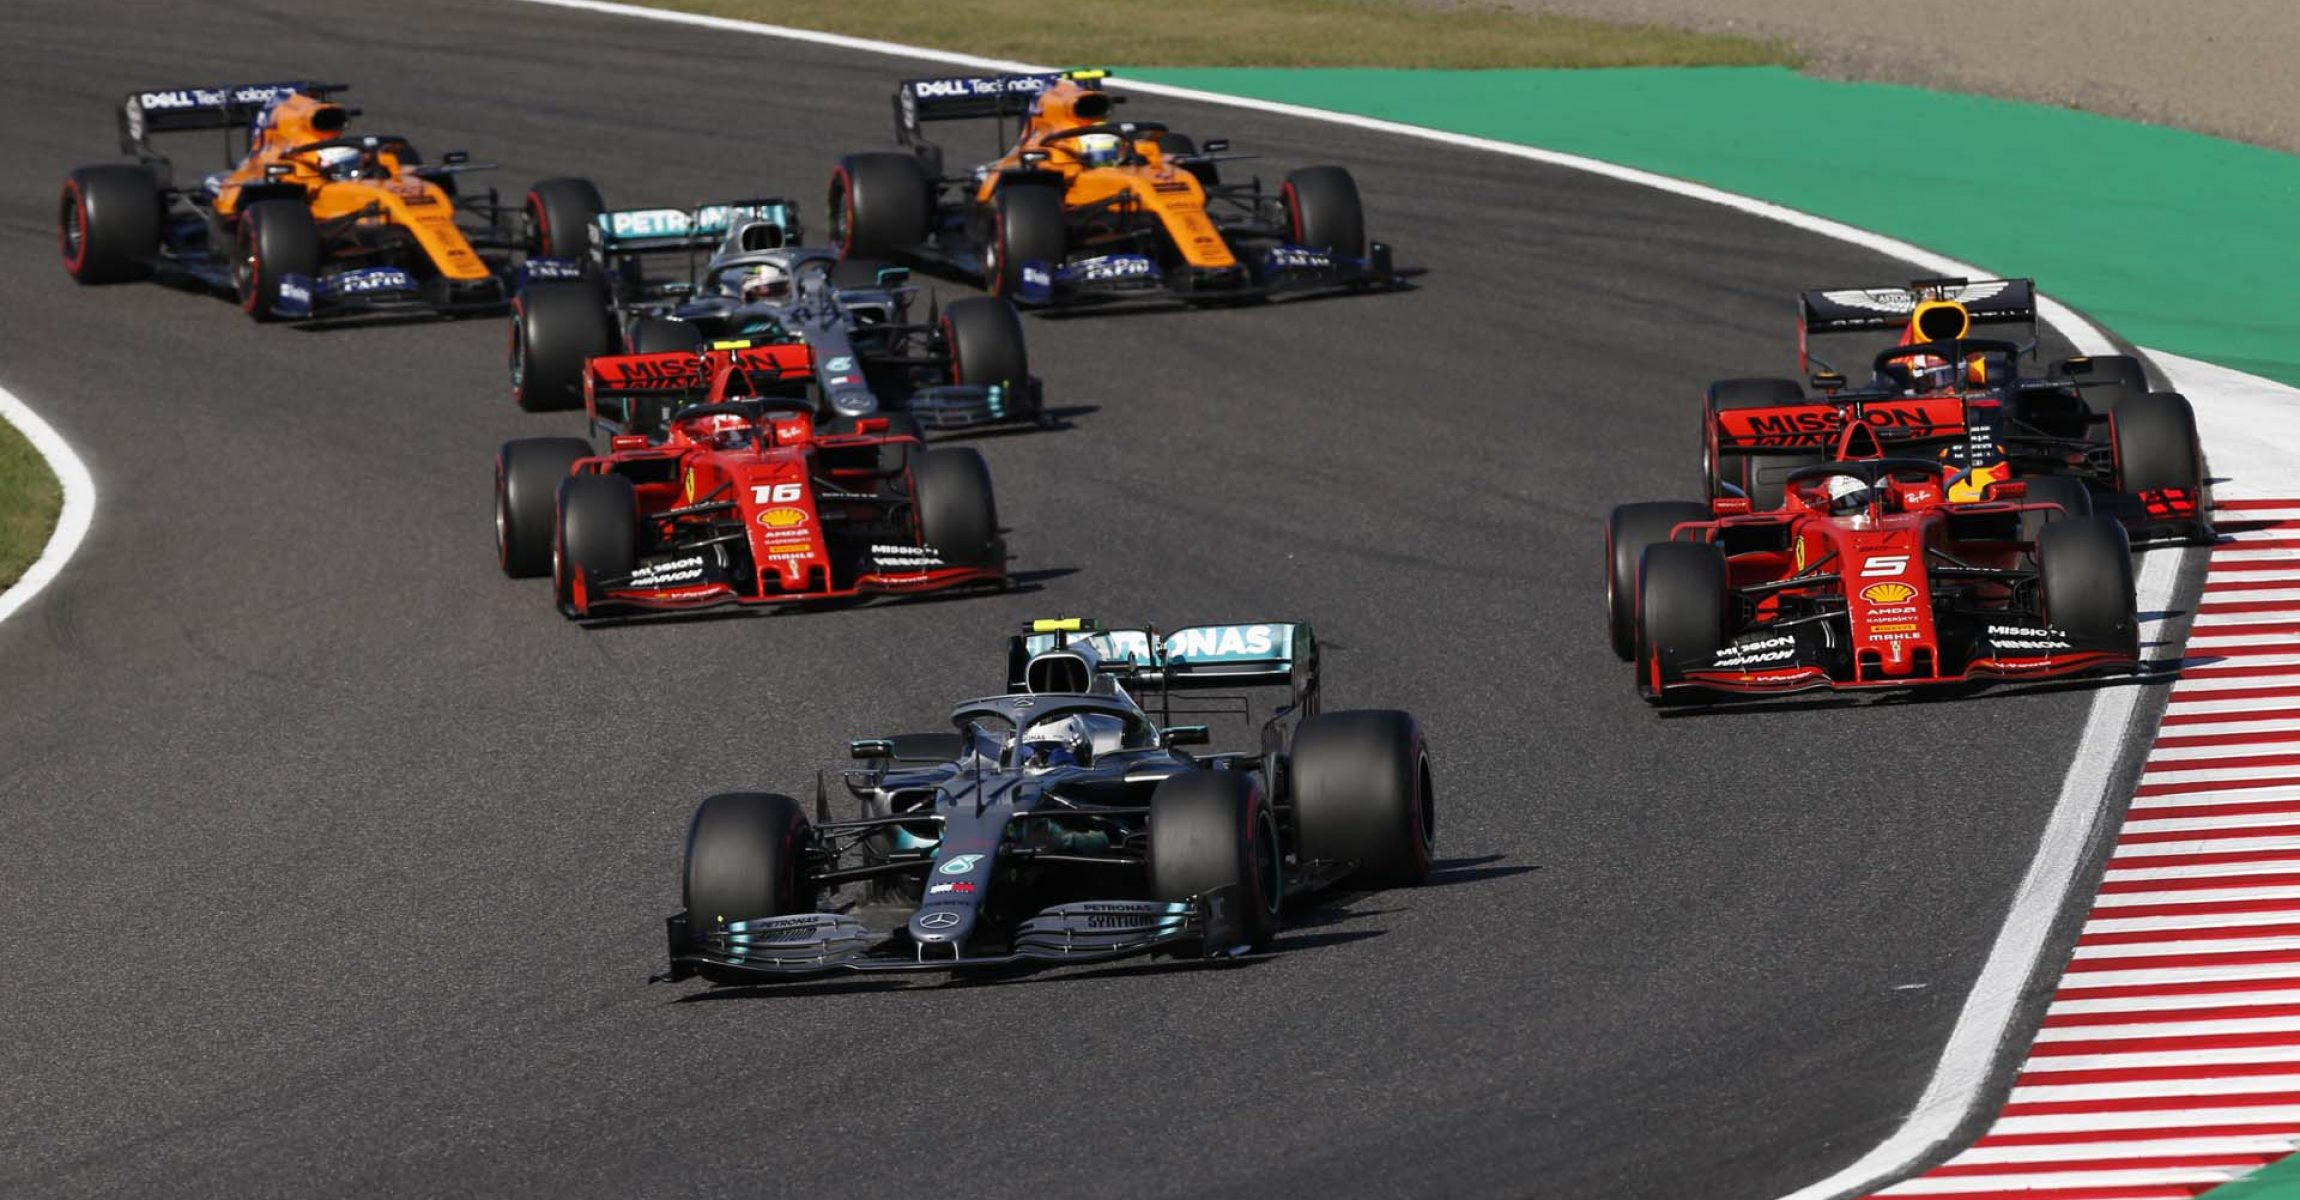 2019 Japanese Grand Prix, Sunday - Wolfgang Wilhelm Valtteri Bottas Mercedes start